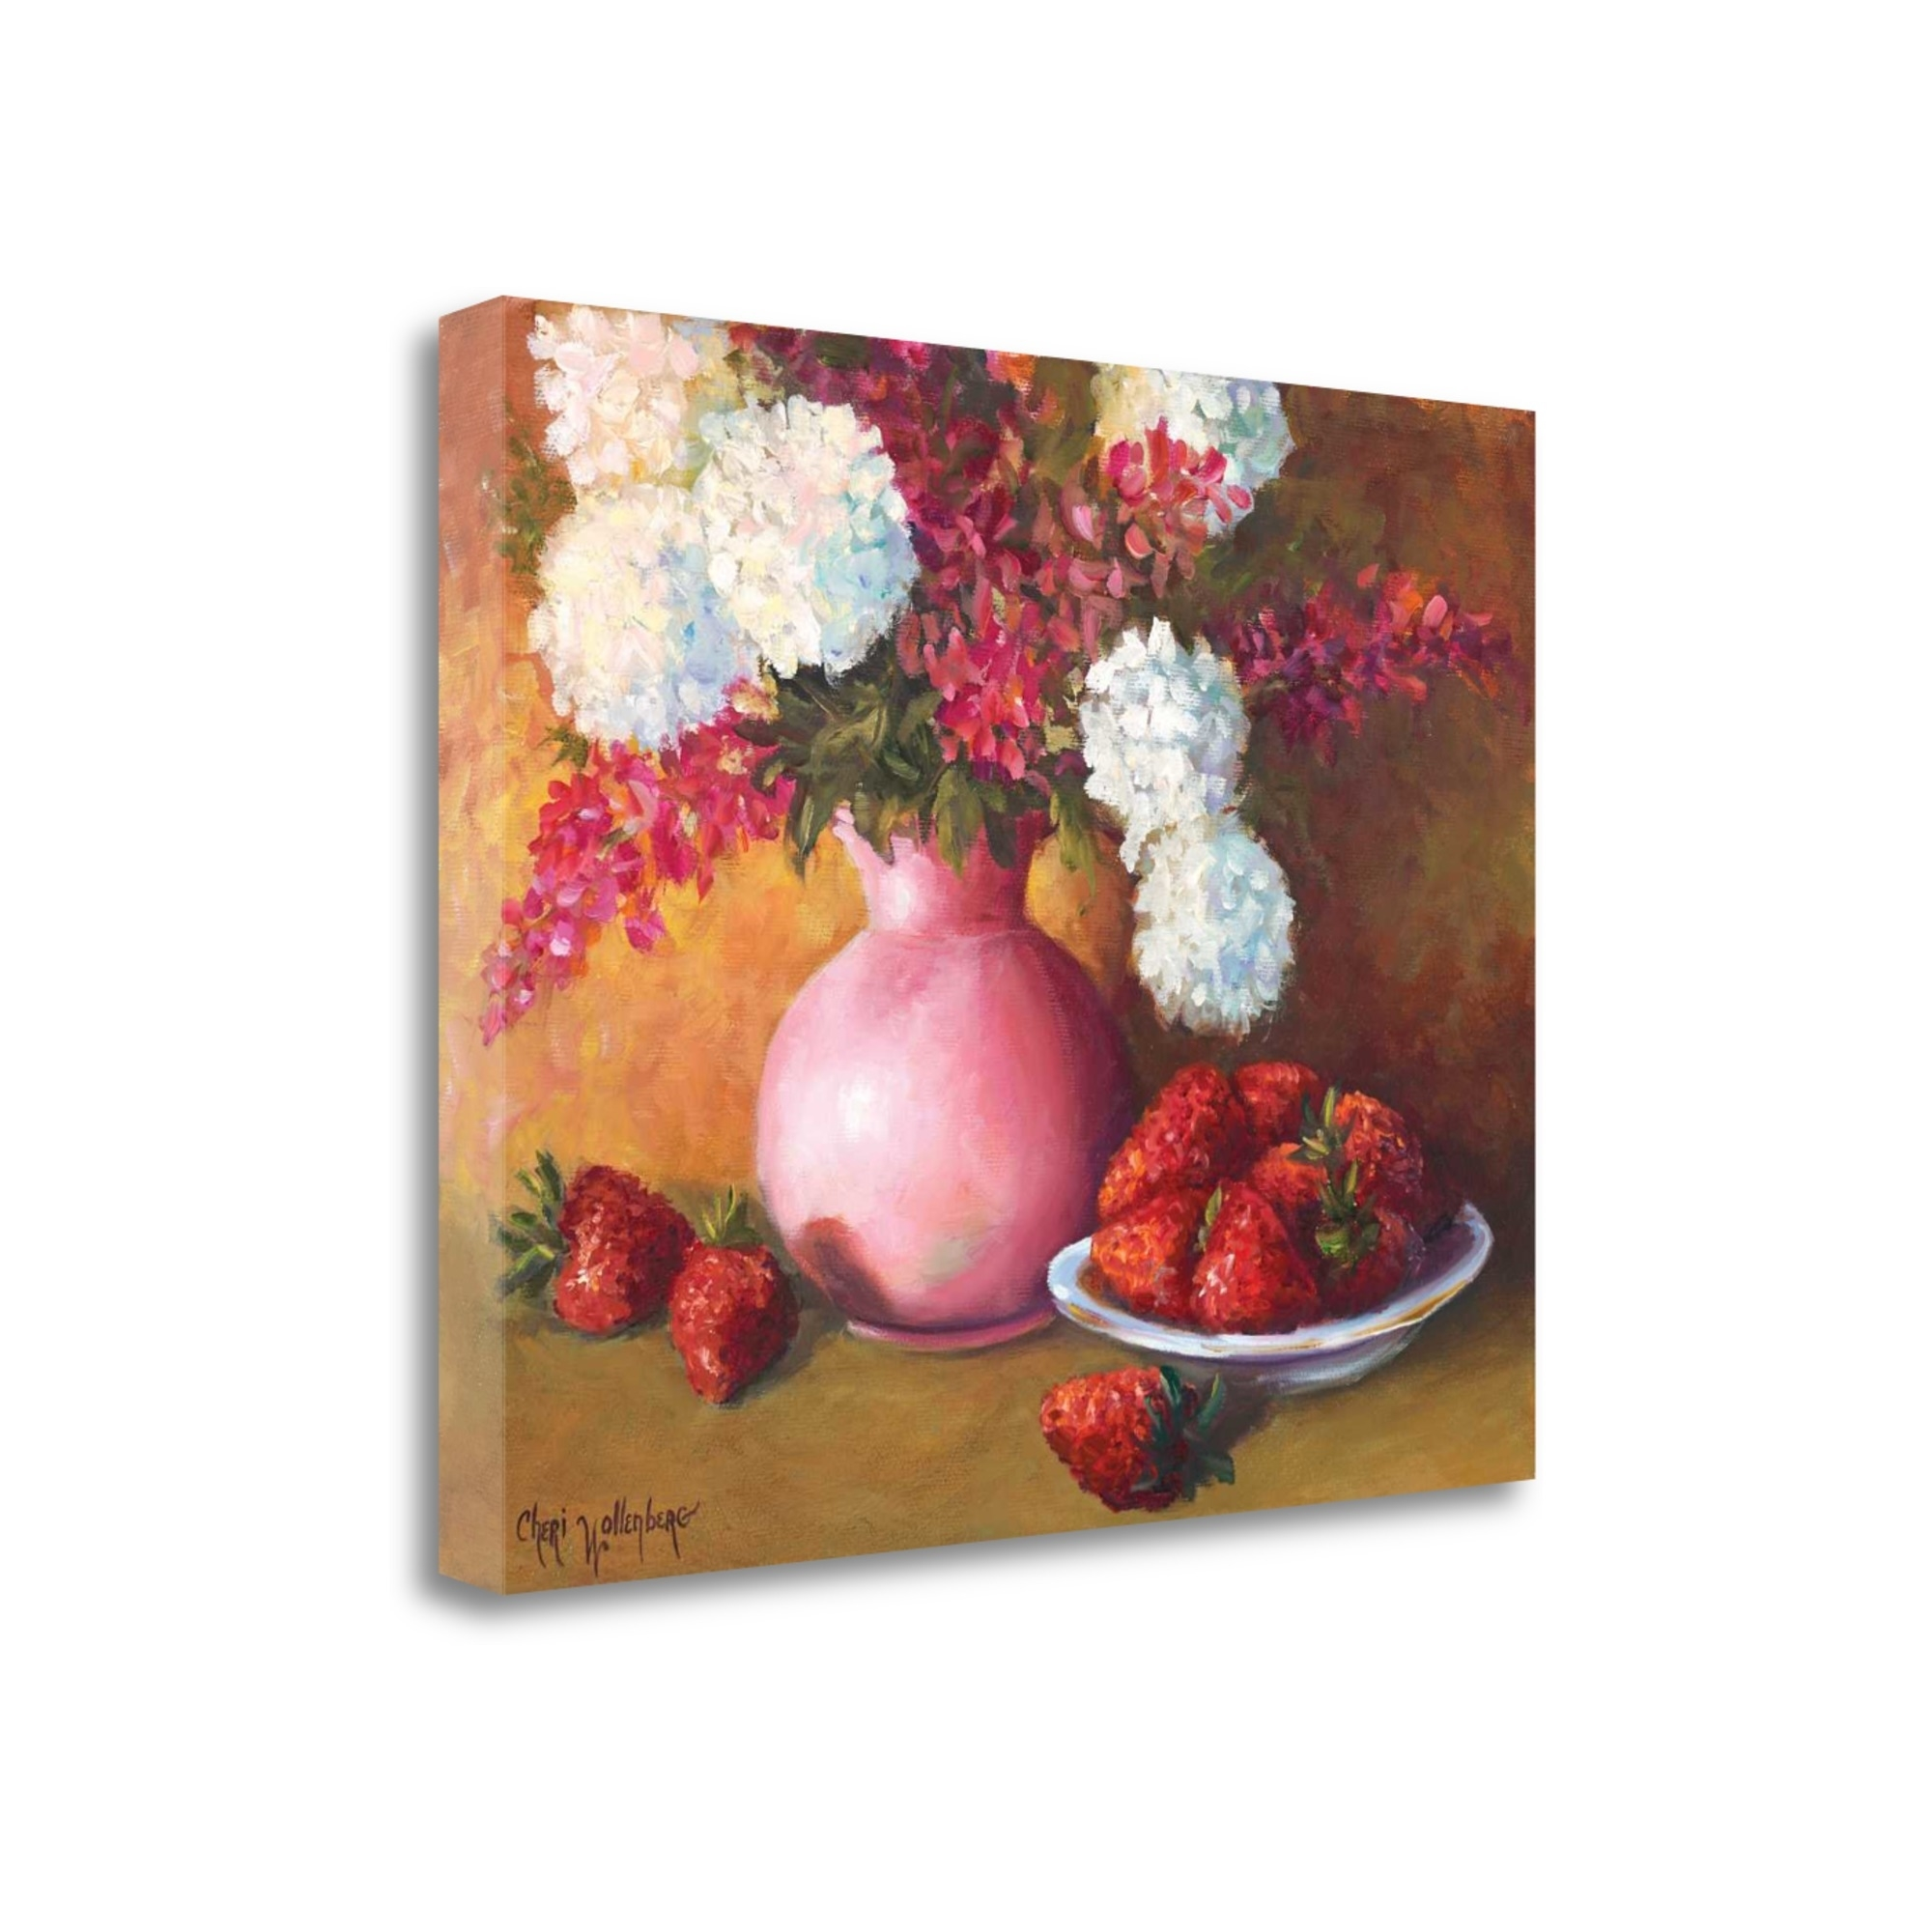 "Pink Vase And Strawberries By Cheri Wollenberg, 28"" x 22\"" Fine Art Giclee Print on Gallery Wrap Canvas, Ready to Hang"